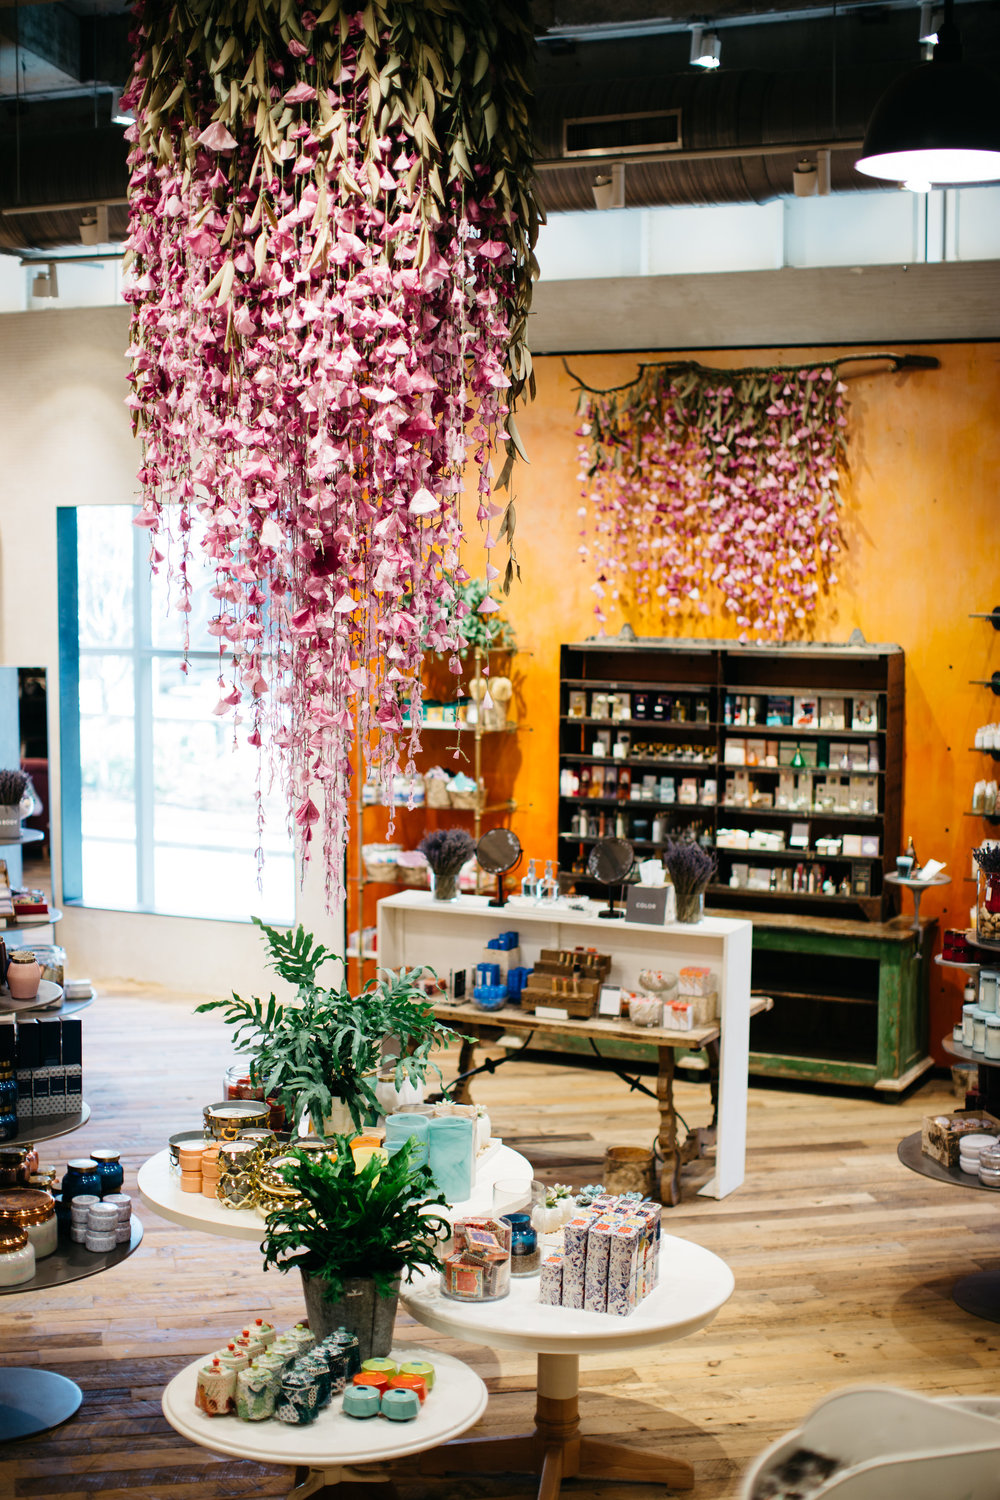 OPPORTUNITY: Create wisteria installation in Anthropologie as a visual  display intern. SOLUTION: Using